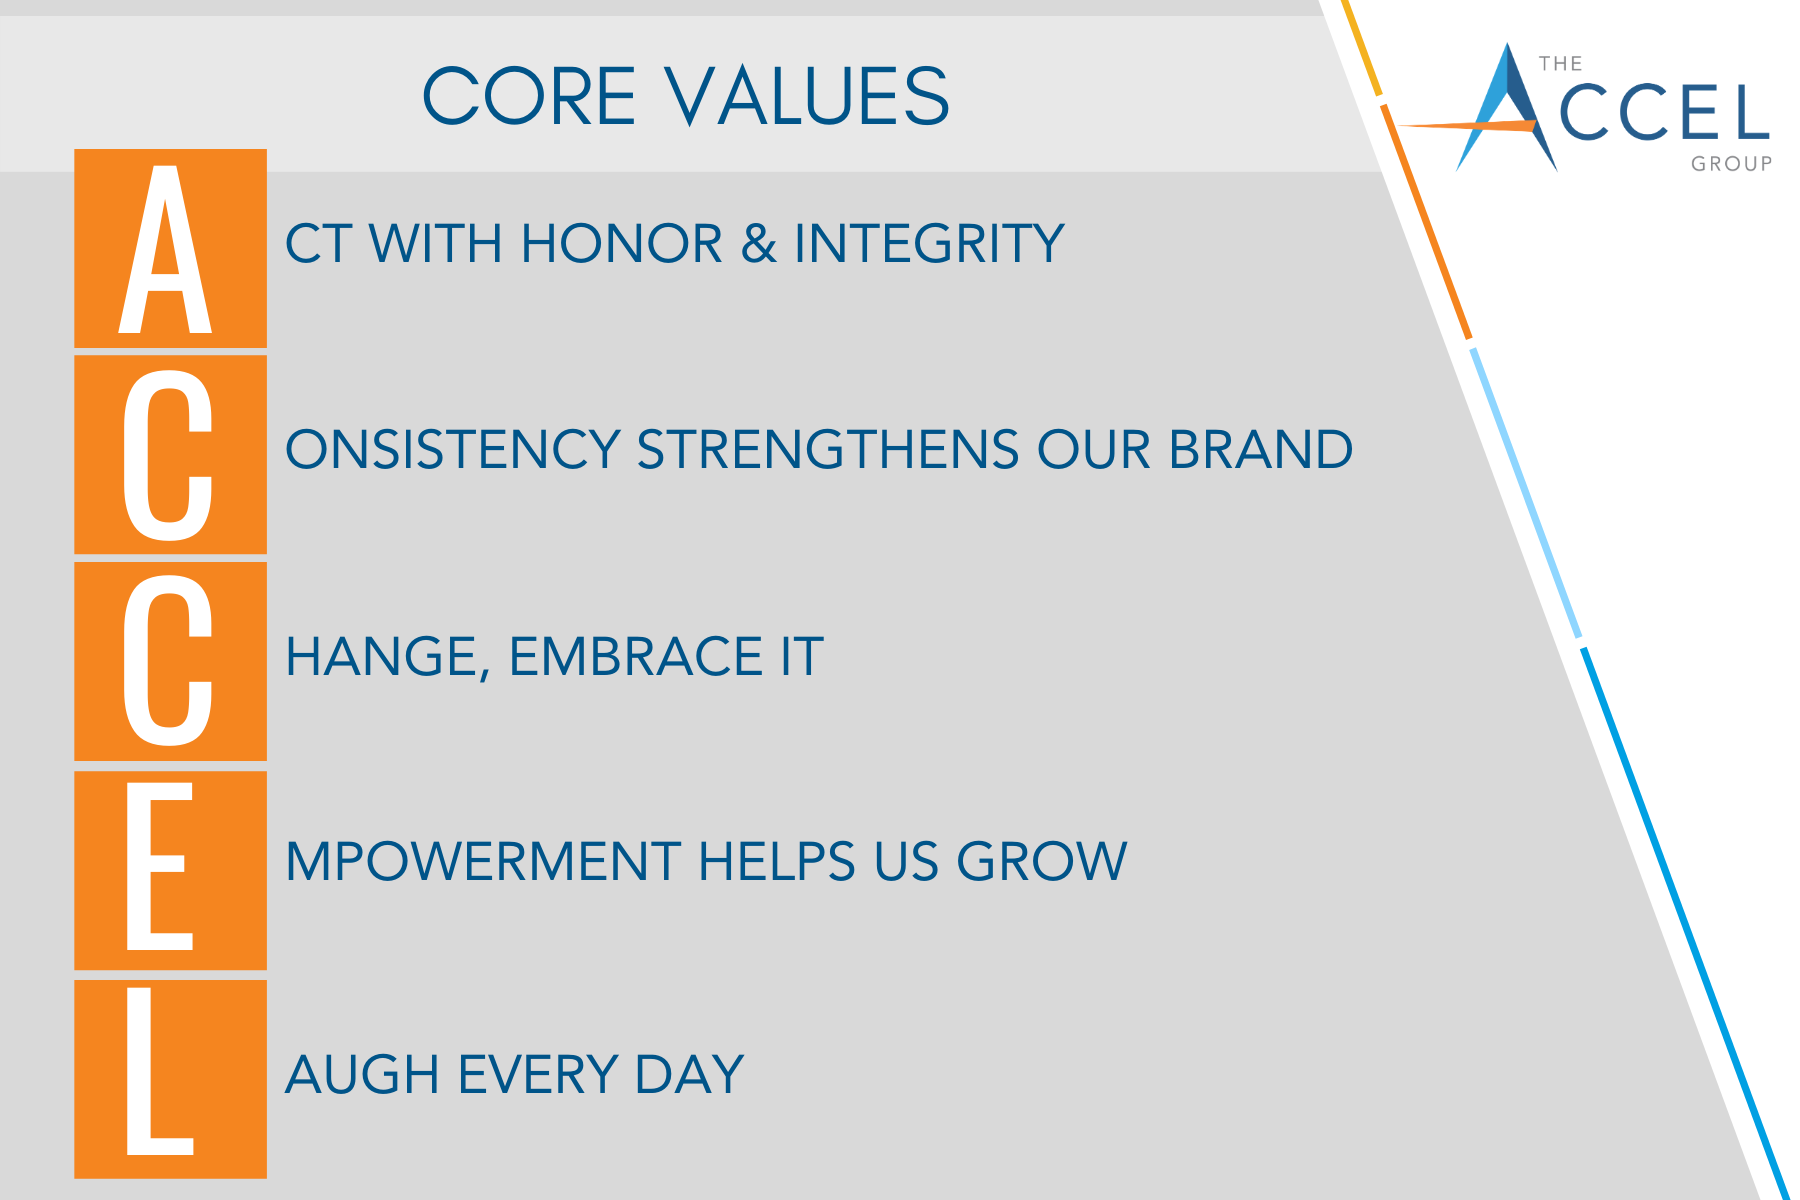 The Accel Group - Core Values